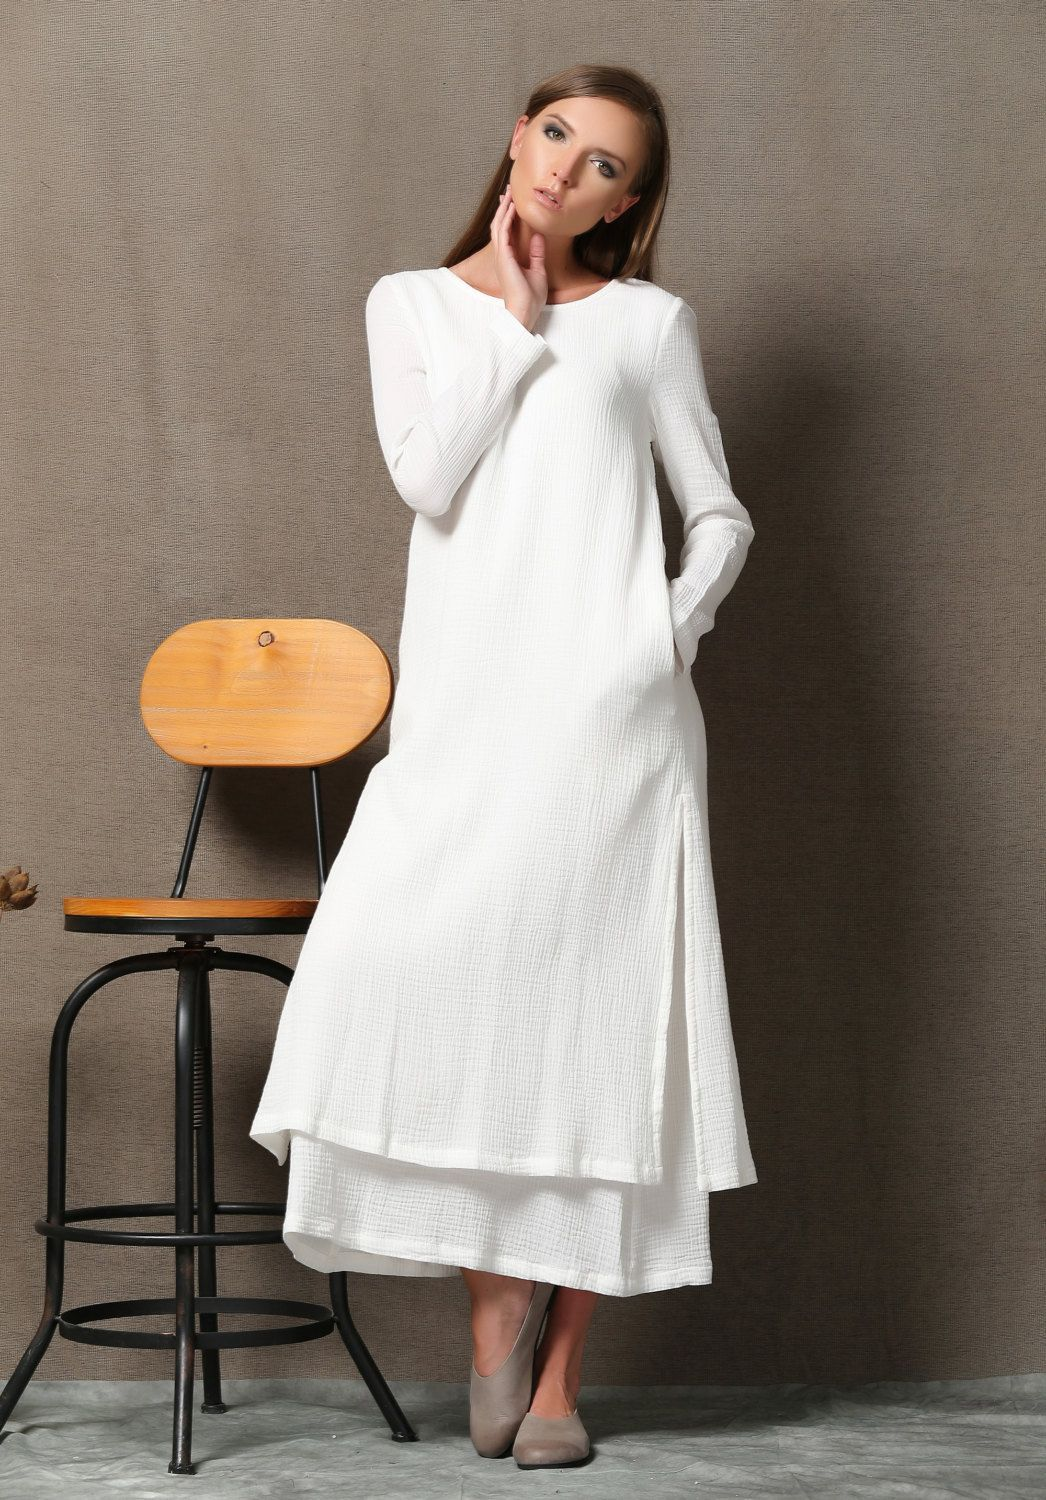 b82e25fc612 White Linen Dress - Layered Loose-Fitting Plus Size Casual Comfortable Long  Sleeve Handmade Clothing C554 by YL1dress on Etsy